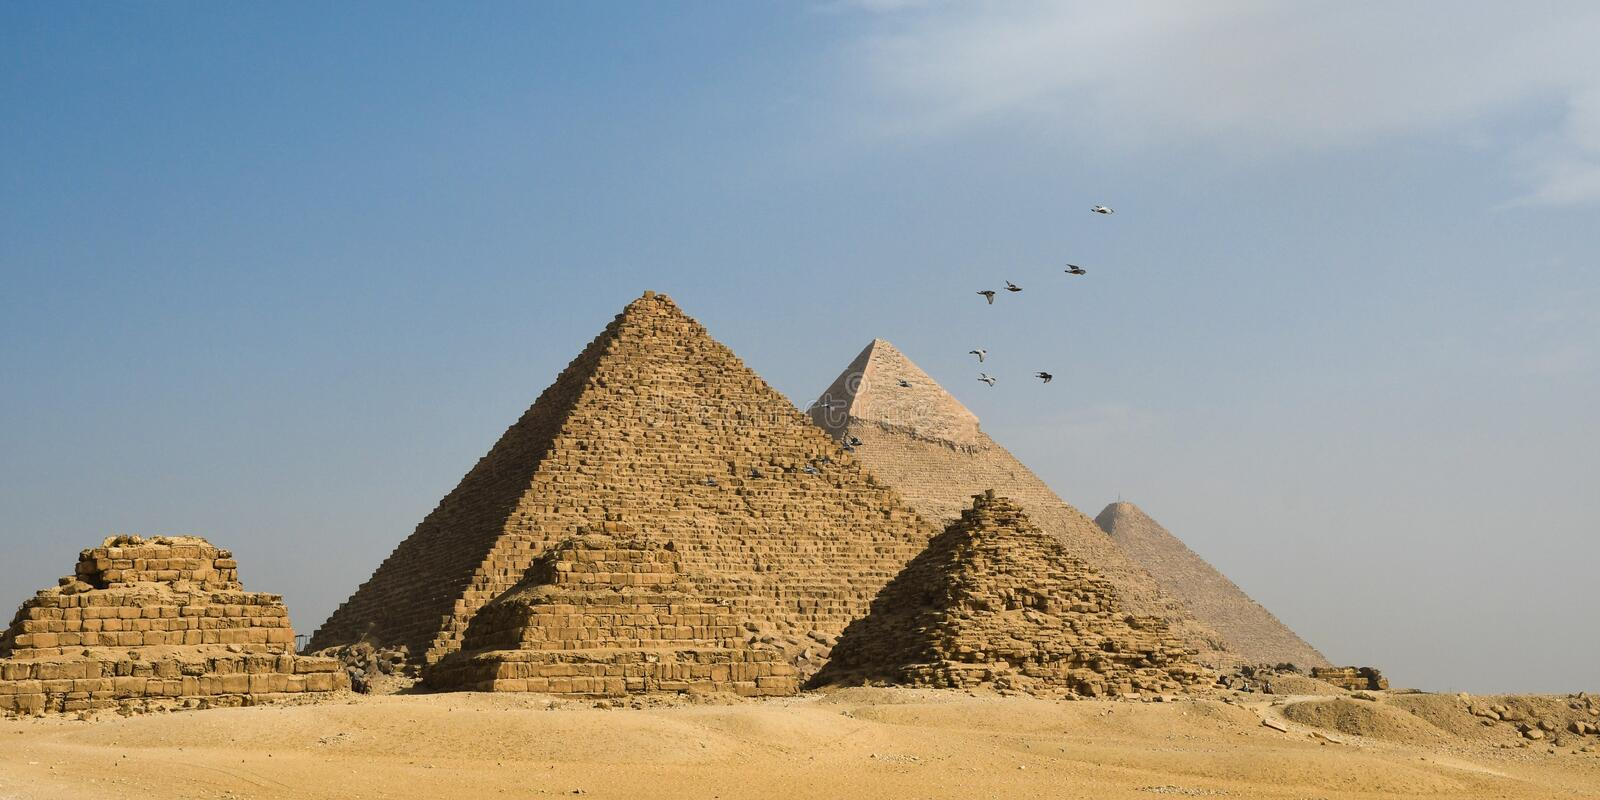 Giza pyramids and flying birds. Cairo, Egypt, Africa royalty free stock photo